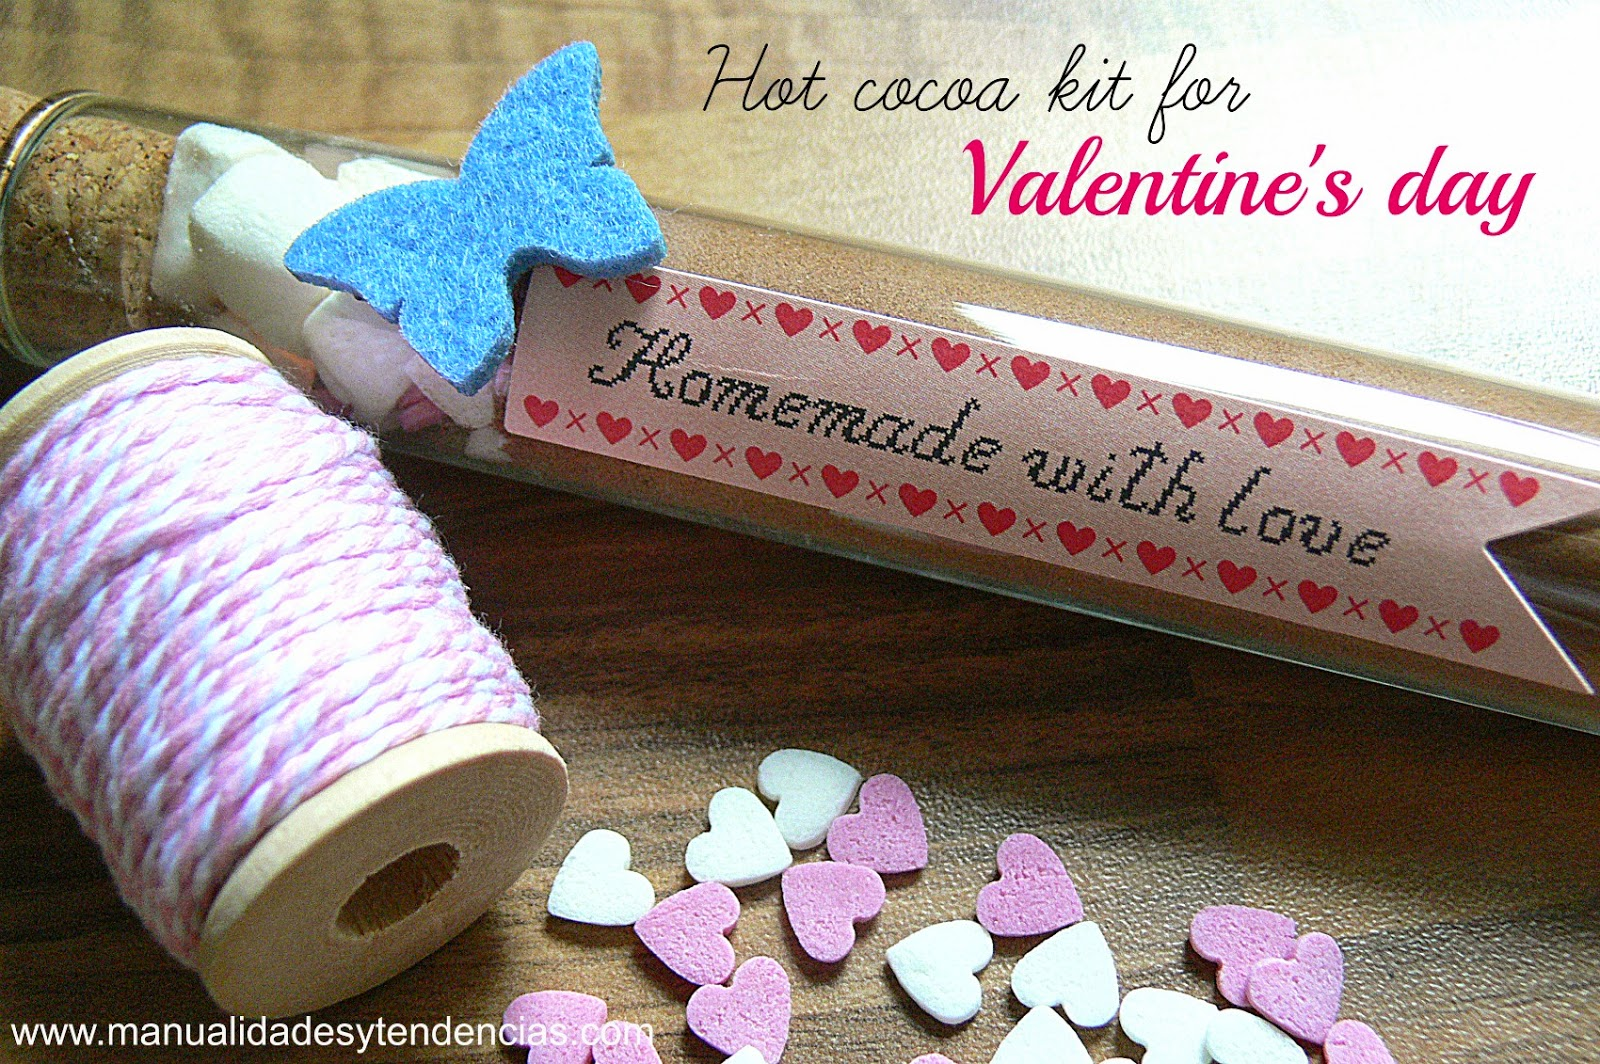 Valentine's day gift idea: Hot cocoa kit